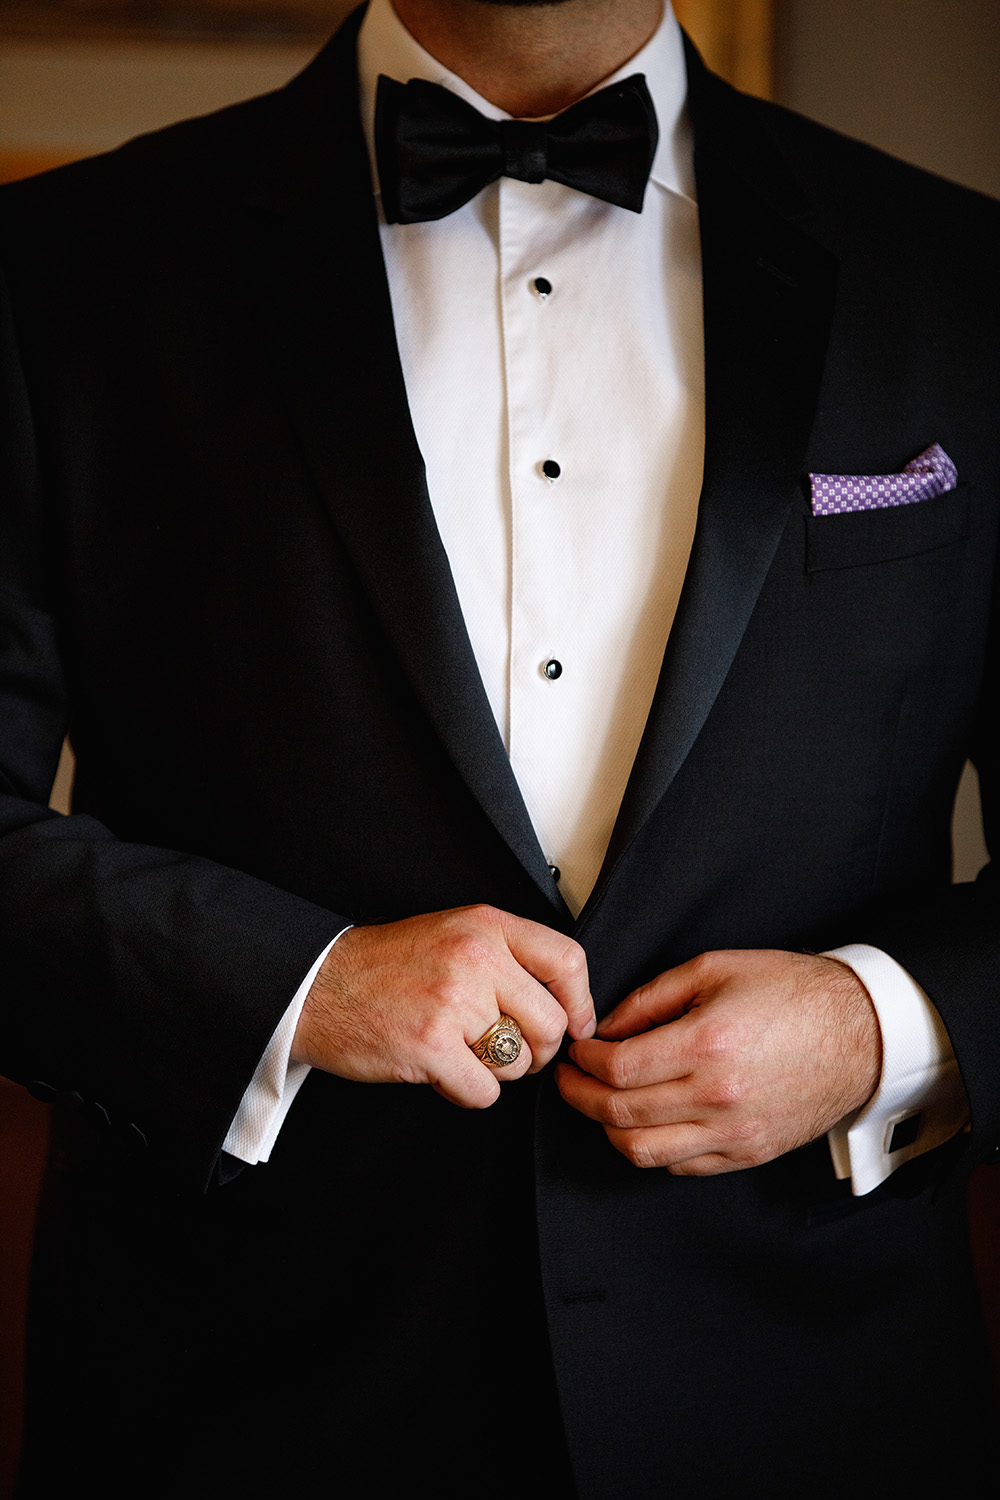 Classic tuxedo with black bow tie and pattered violet pocket square.